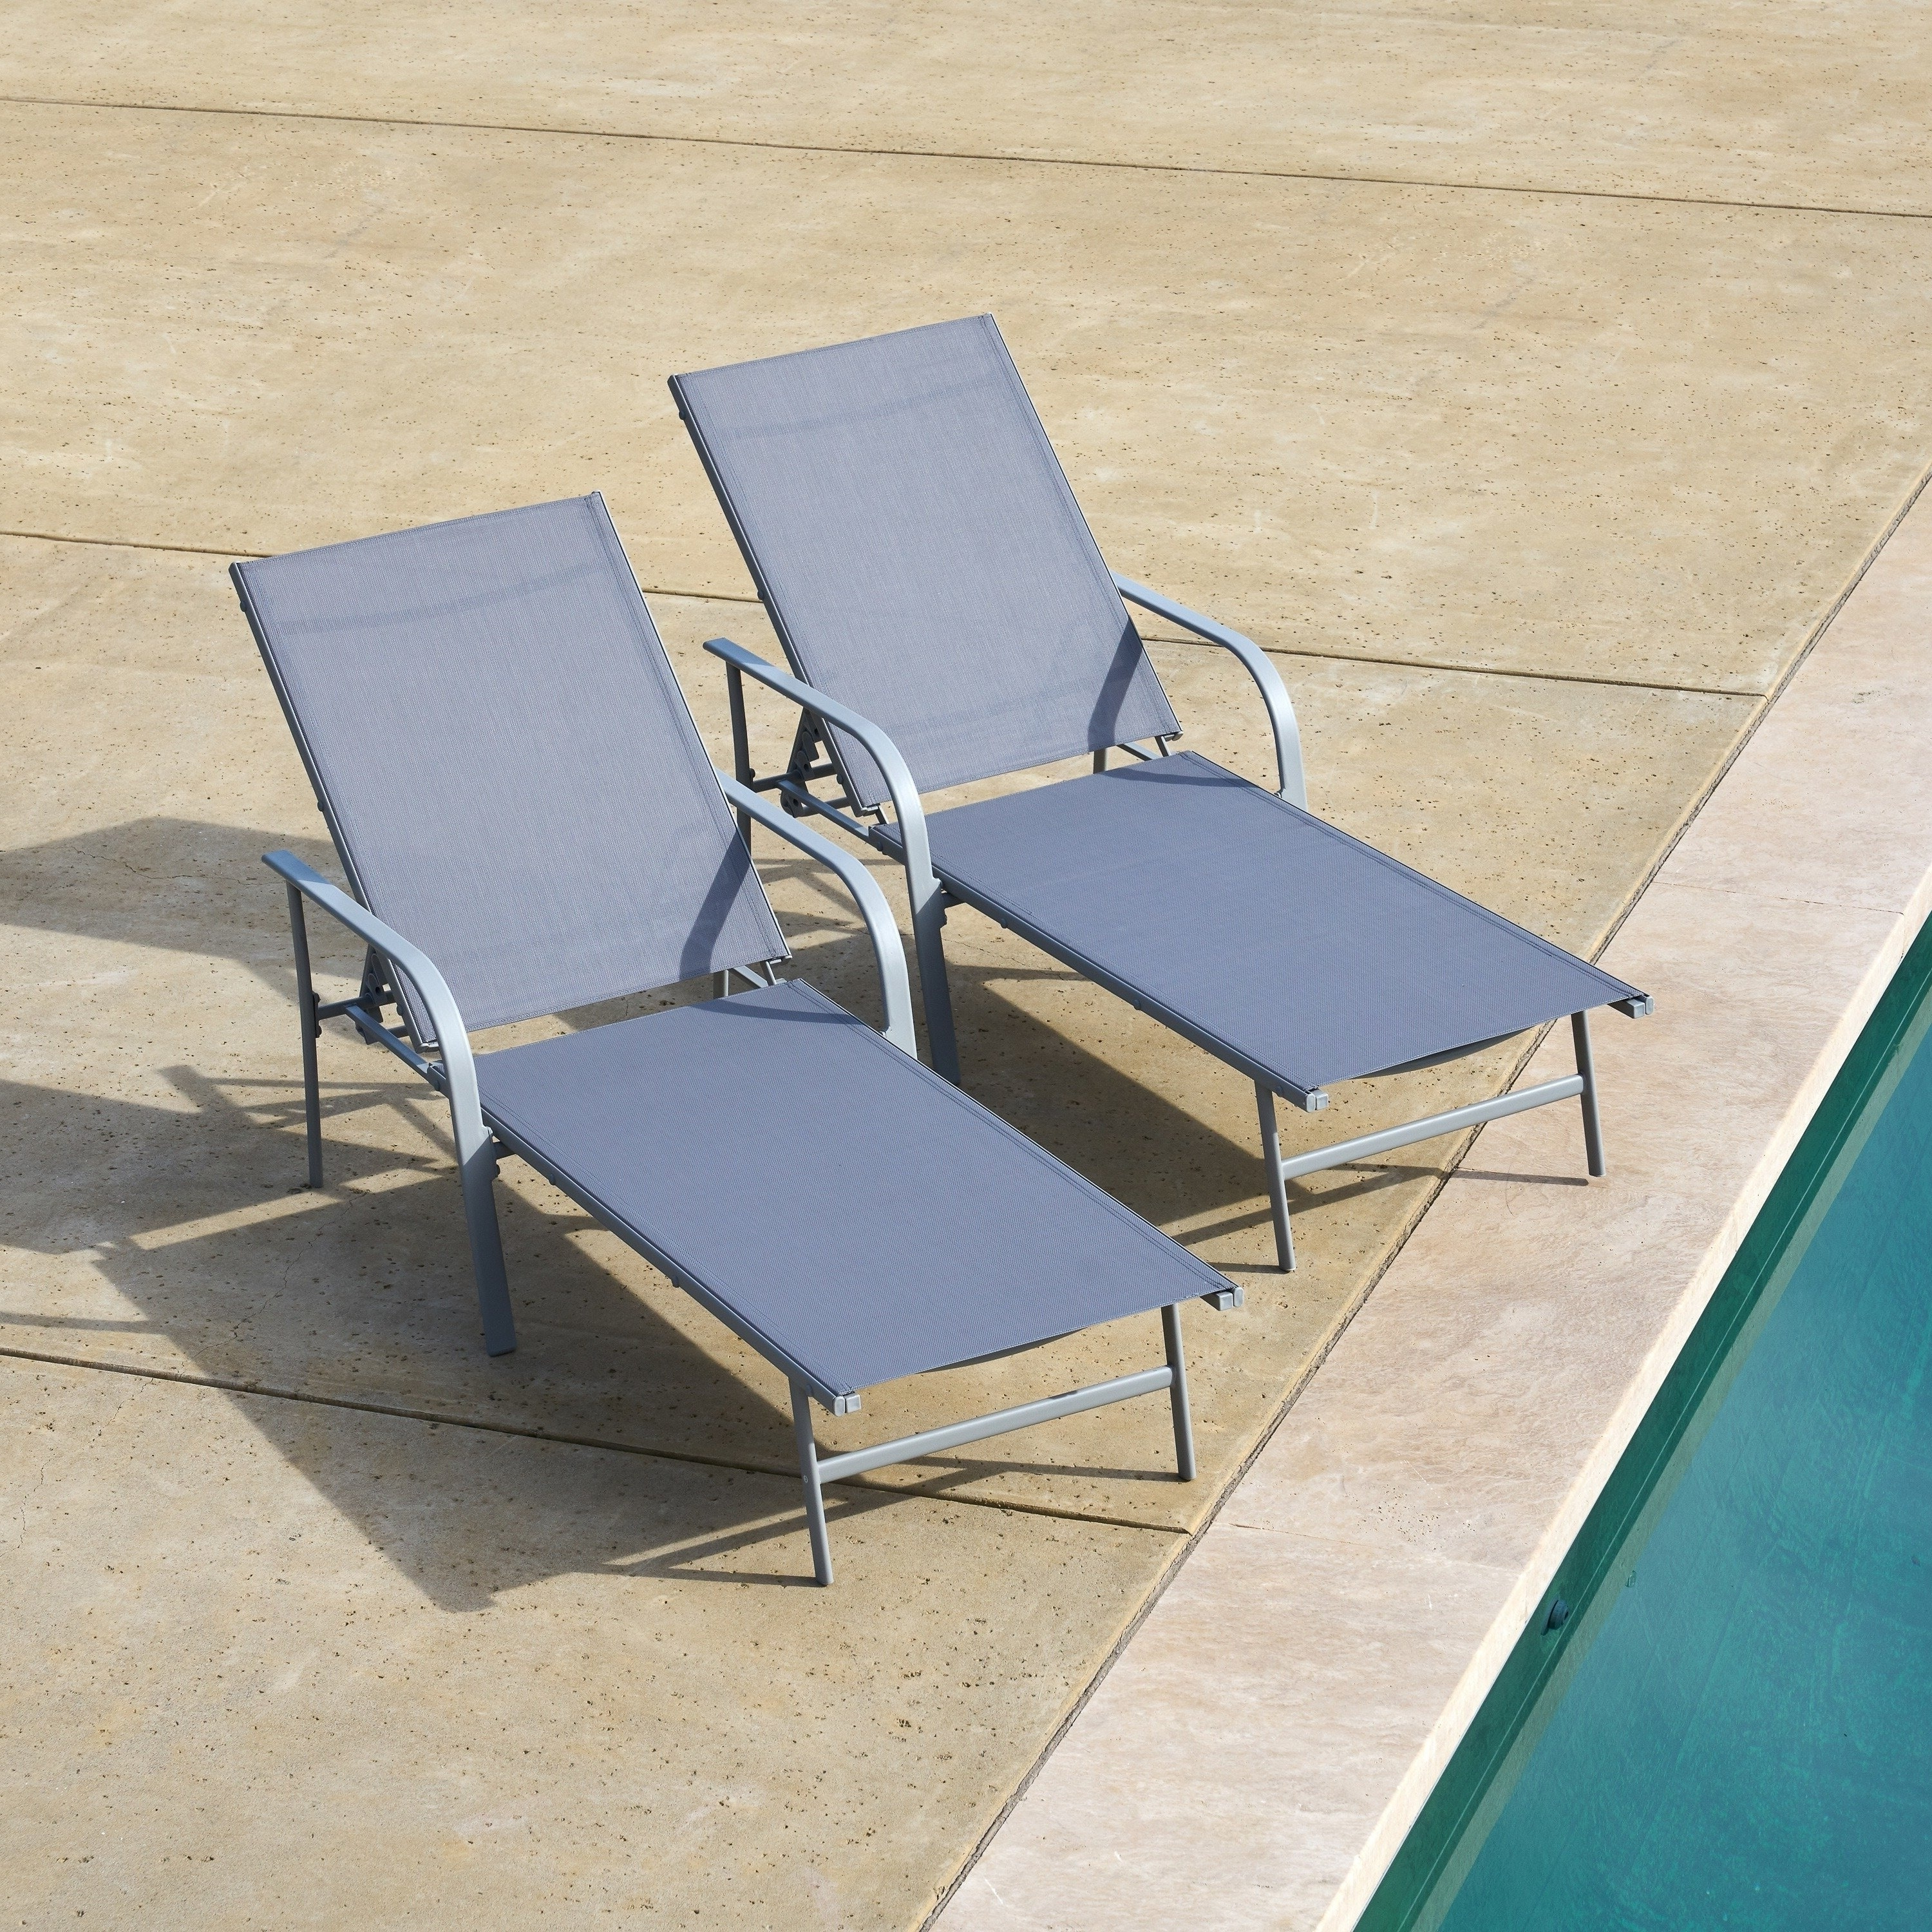 Corvus Antonio Sling Fabric Adjustable Outdoor Chaise Lounge With Regard To Best And Newest Antonio Sling Fabric Adjustable Outdoor Chaise Lounges (View 13 of 25)